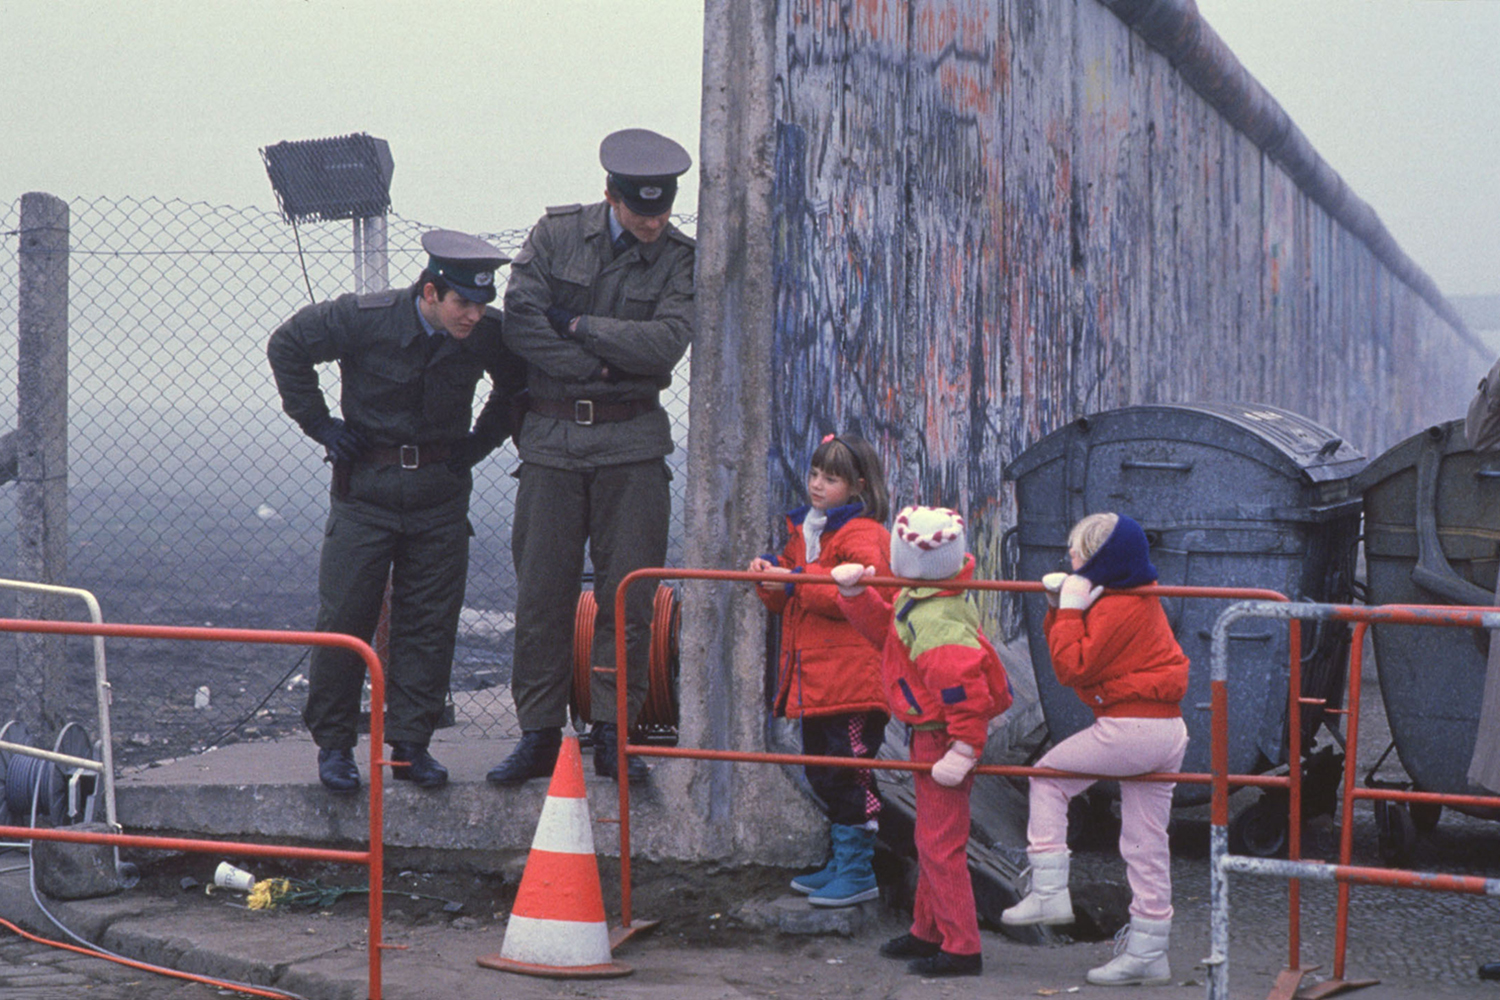 West German schoolchildren on the way to school peer at East German border guards at a new opening in the Berlin Wall